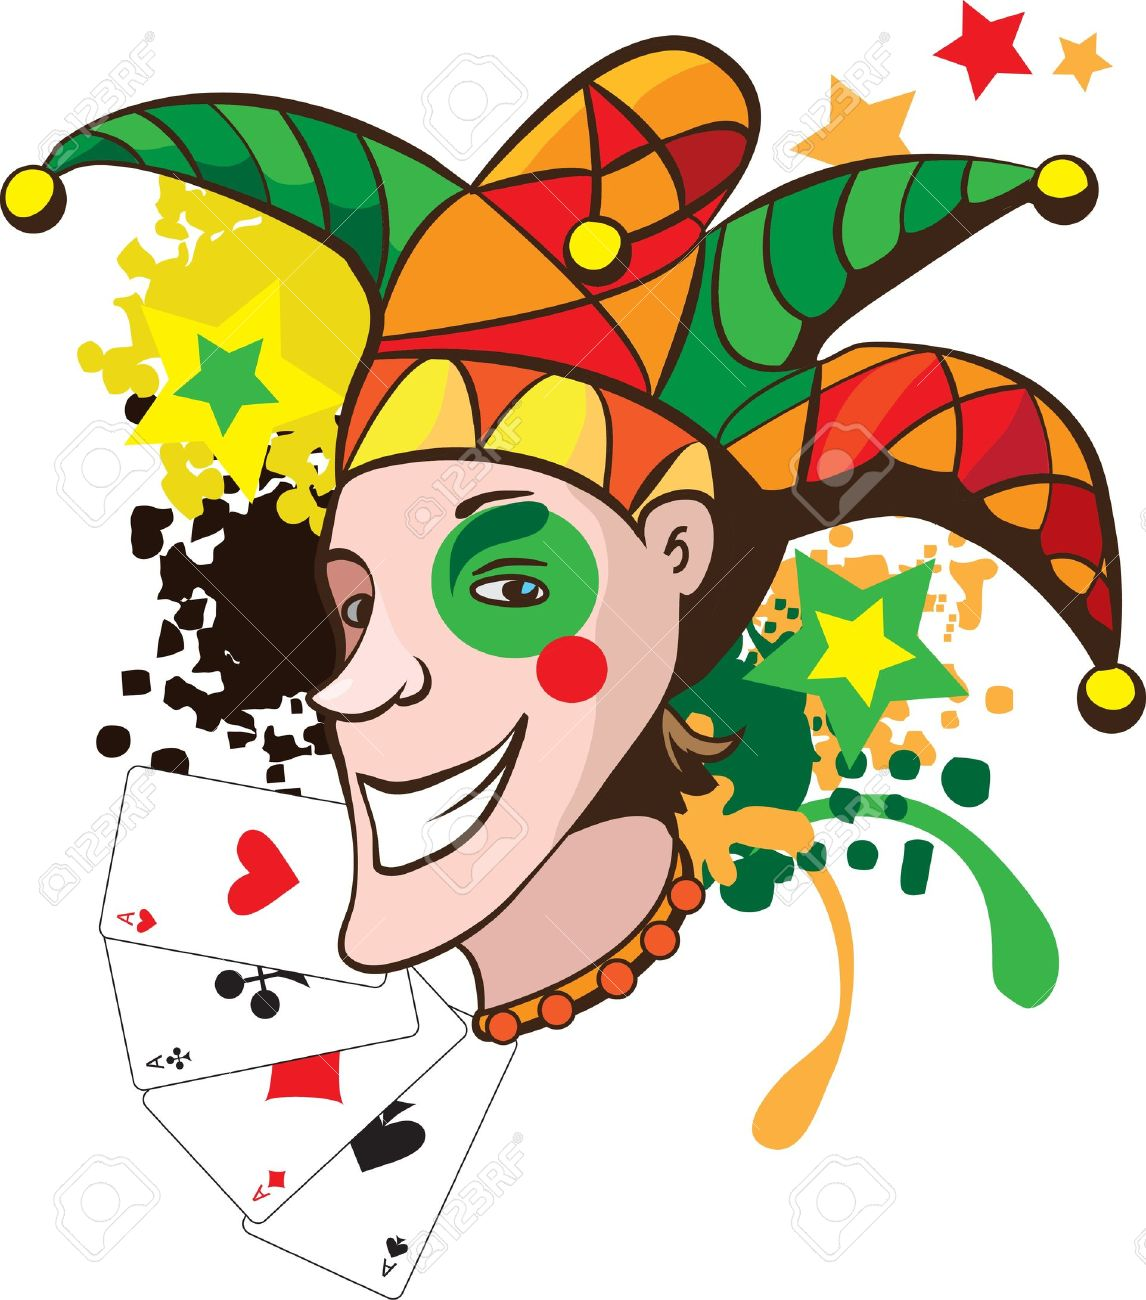 Smiling joker with cards and stars vector illustration Stock Vector - 9067330